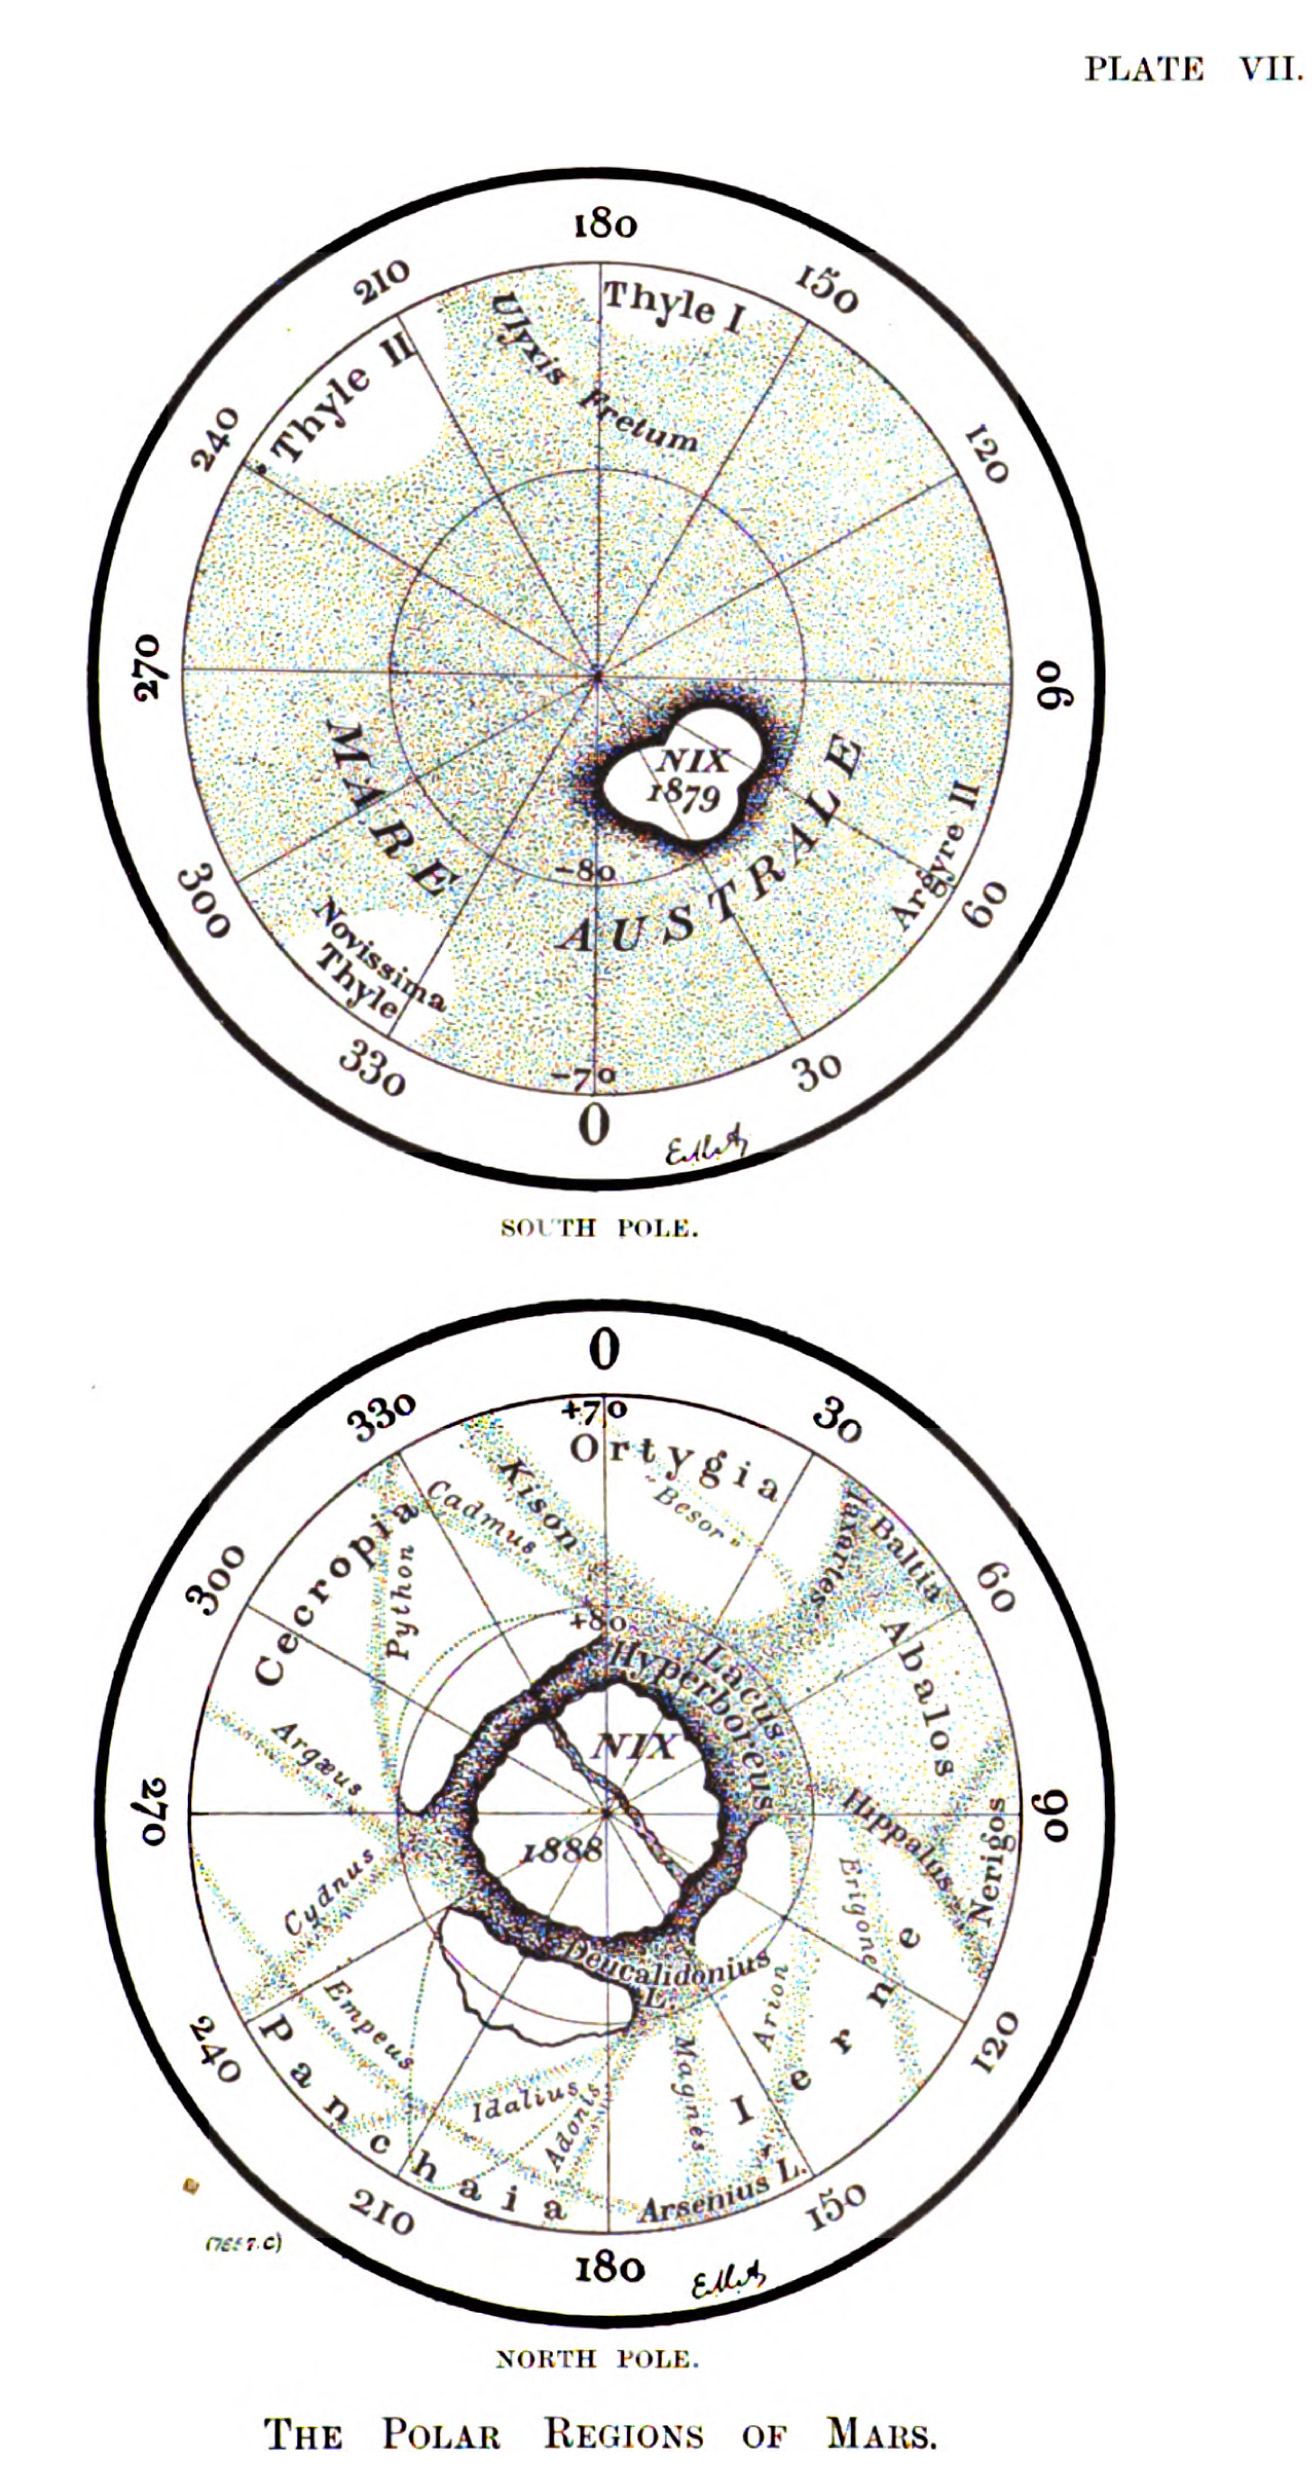 Antoniadi's Polar Maps of Mars 1900-1901